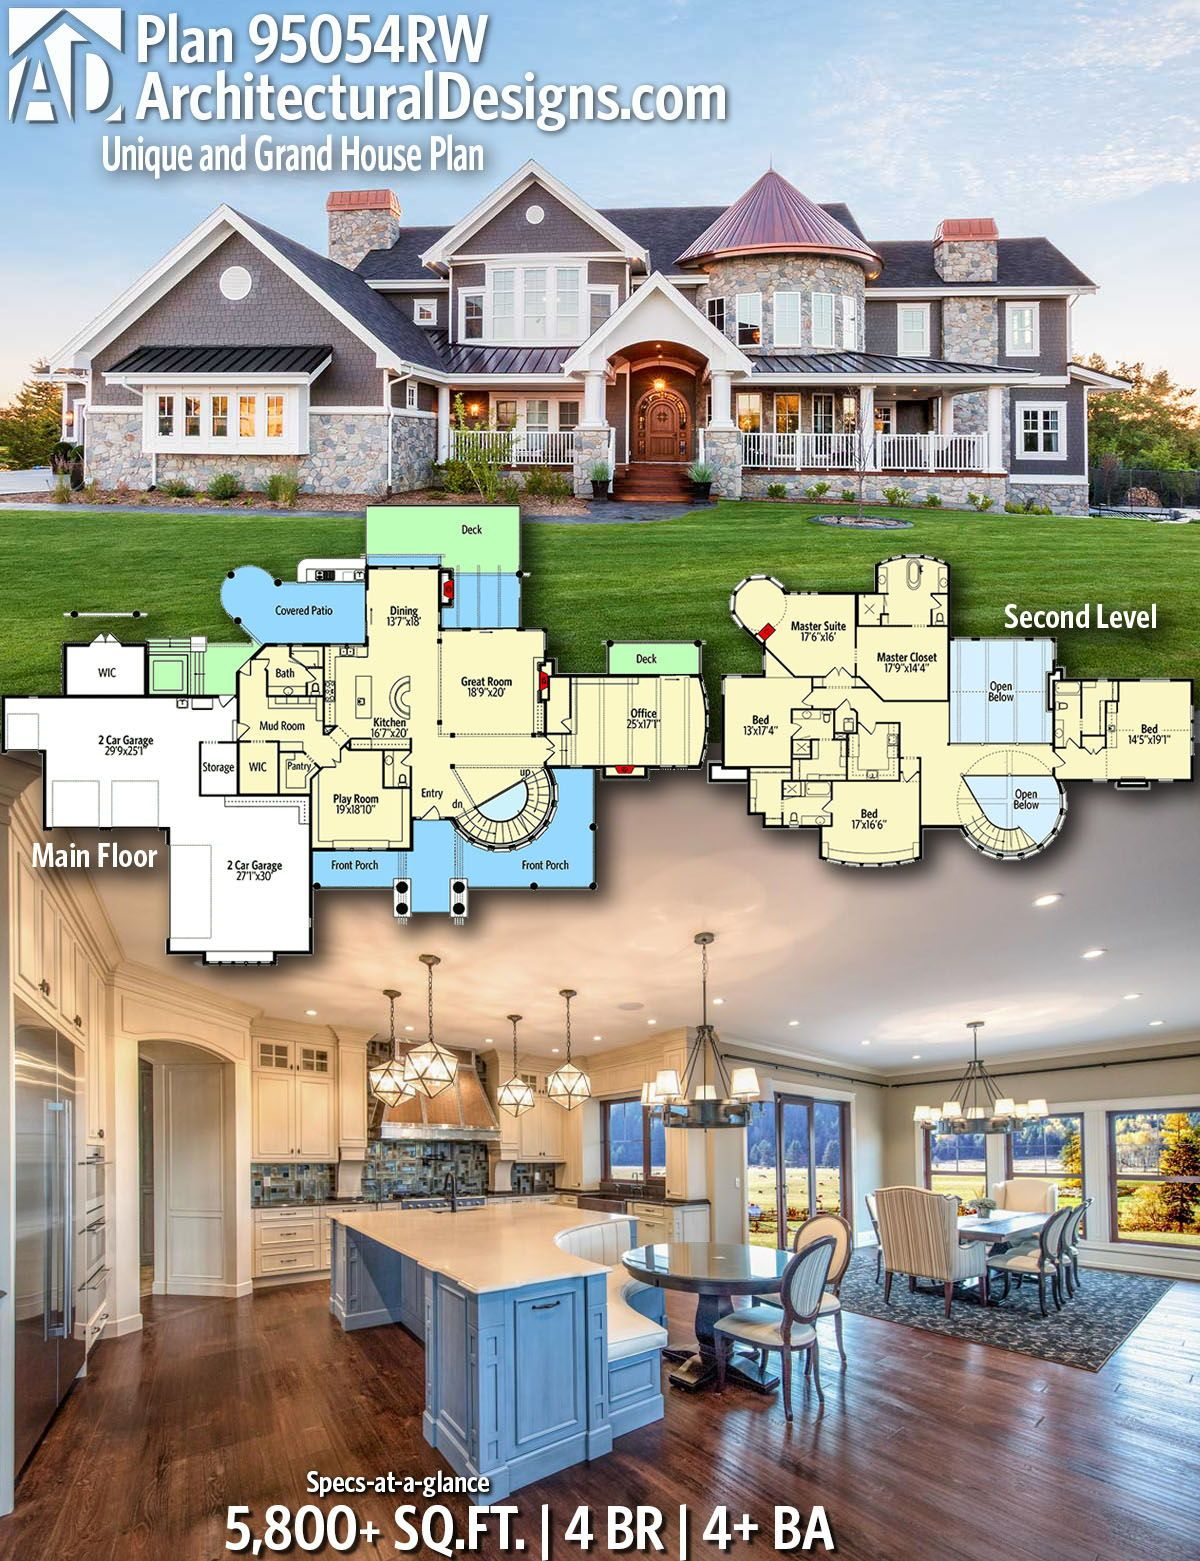 Plan 95054rw Unique And Grand House Plan Dream House Plans House Plans Grand Homes